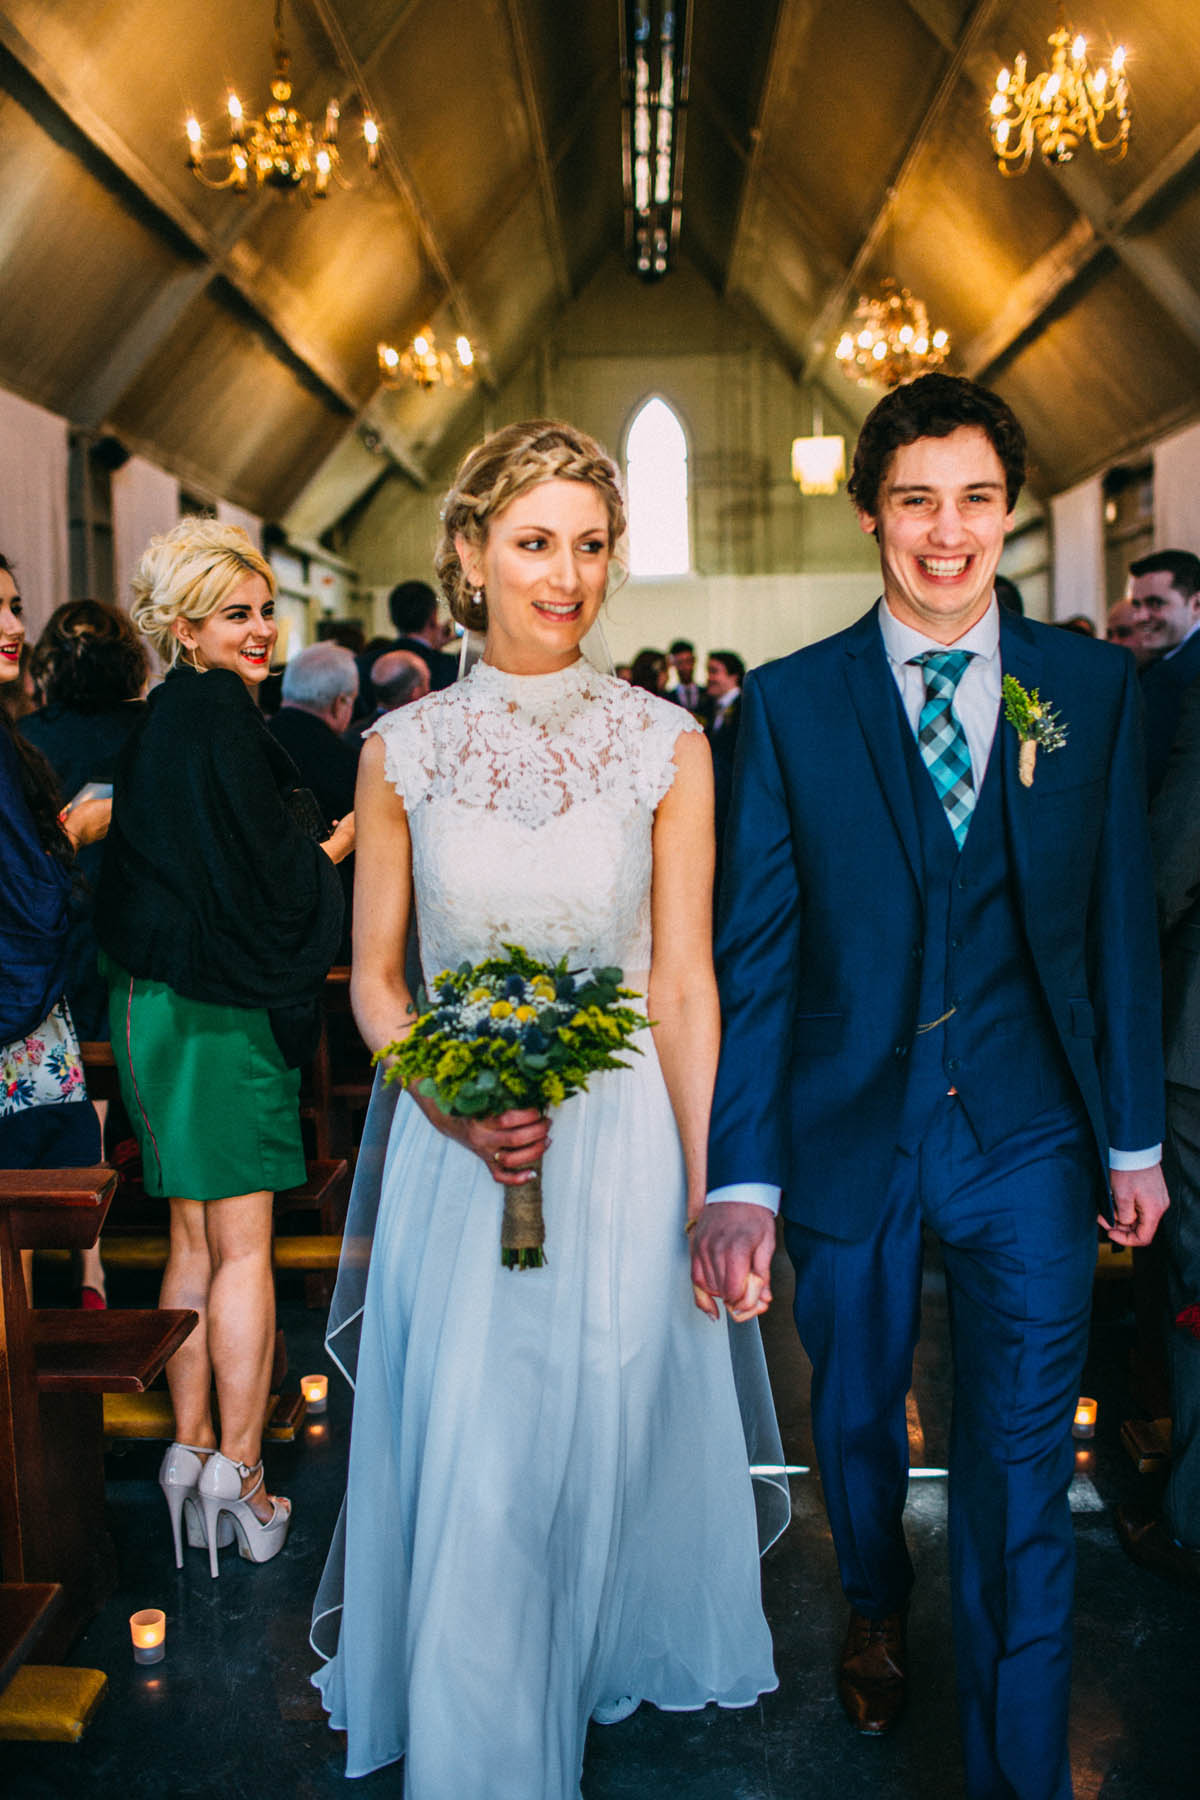 Photos of Sarah & Malcolm's wedding at Mount Druid taken by Rubistyle.